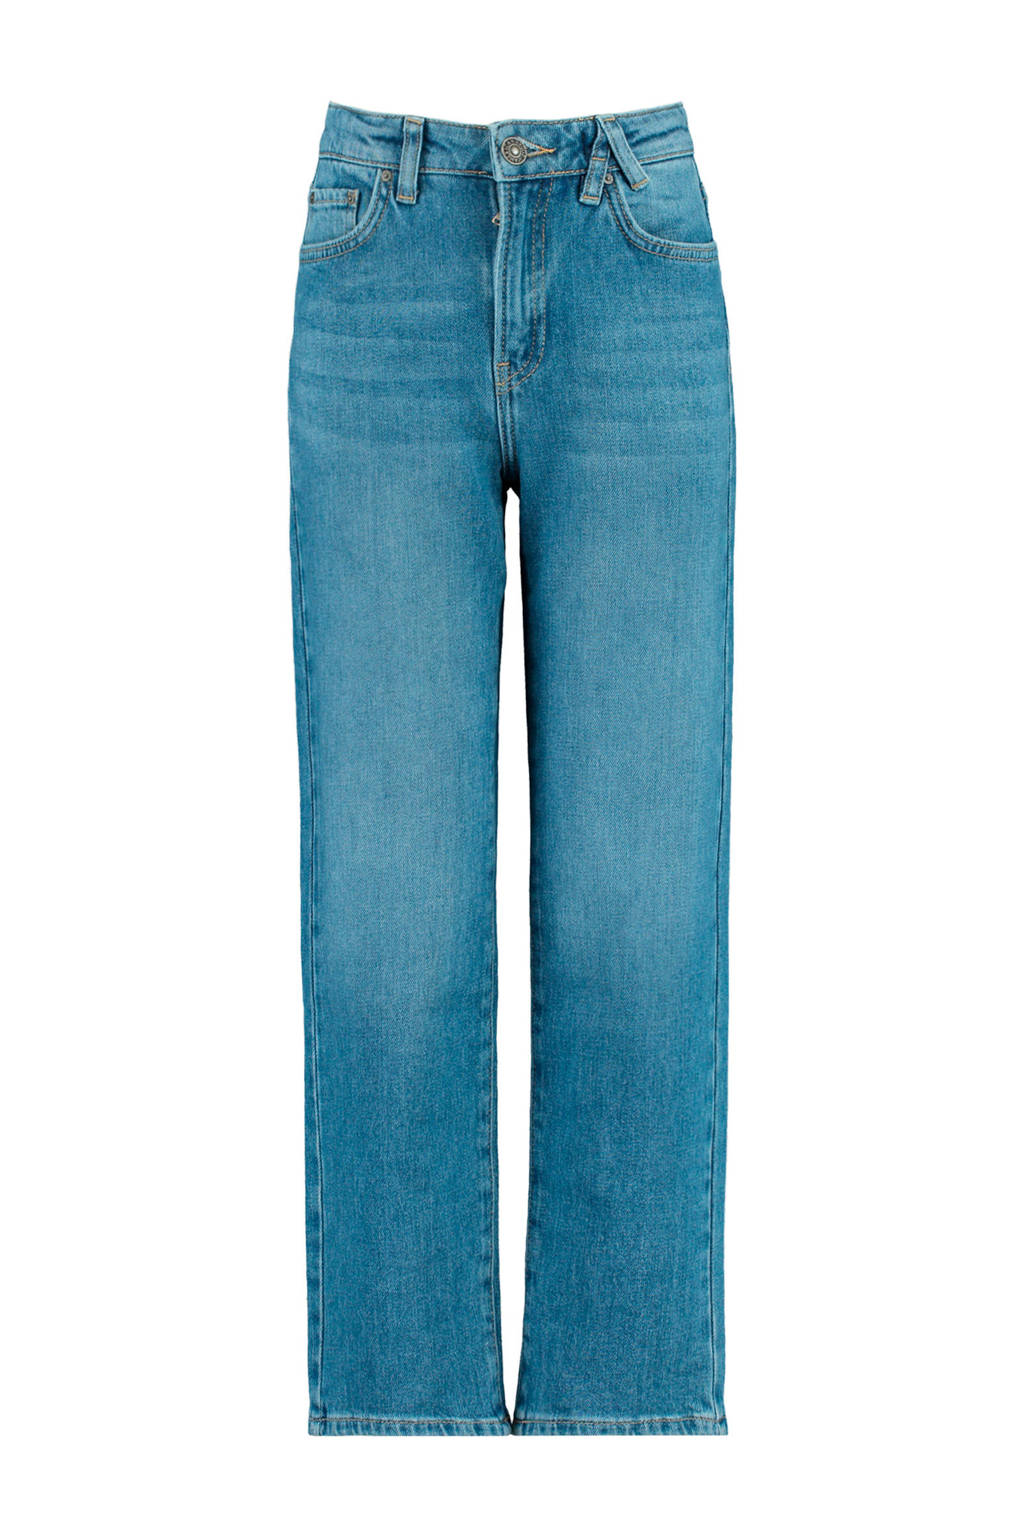 America Today Junior loose fit jeans Kathy stonewashed, Stonewashed